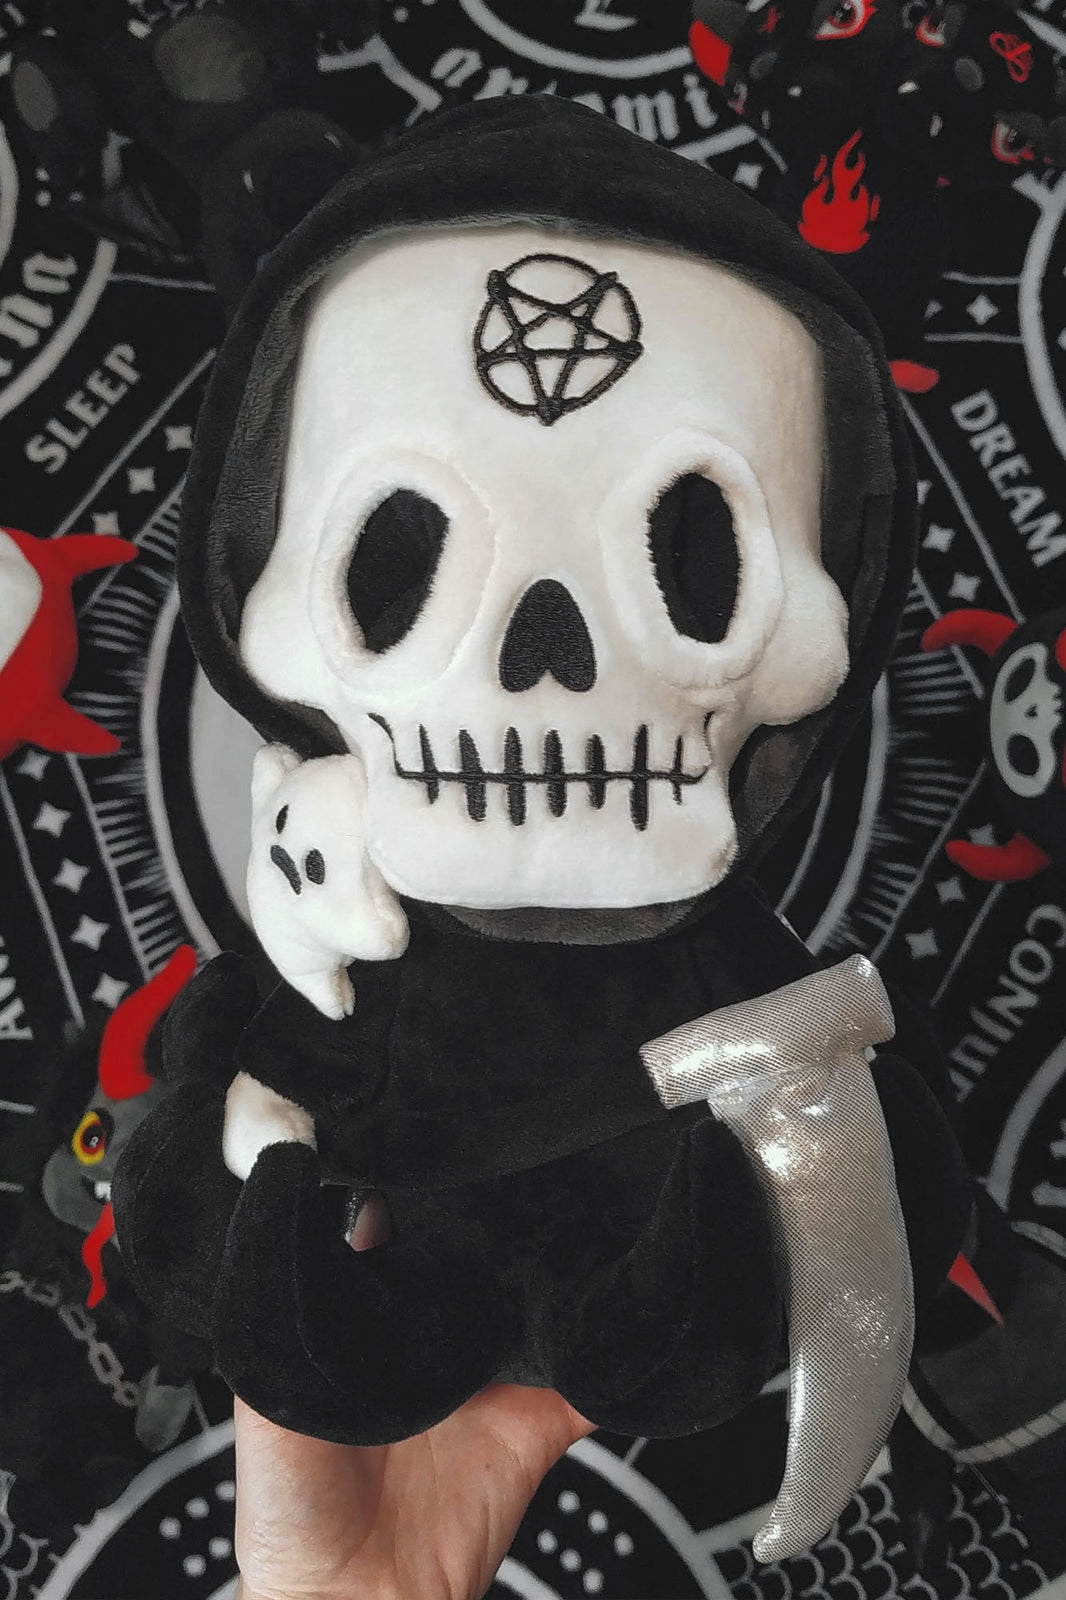 Grim Reaper Plush Toy